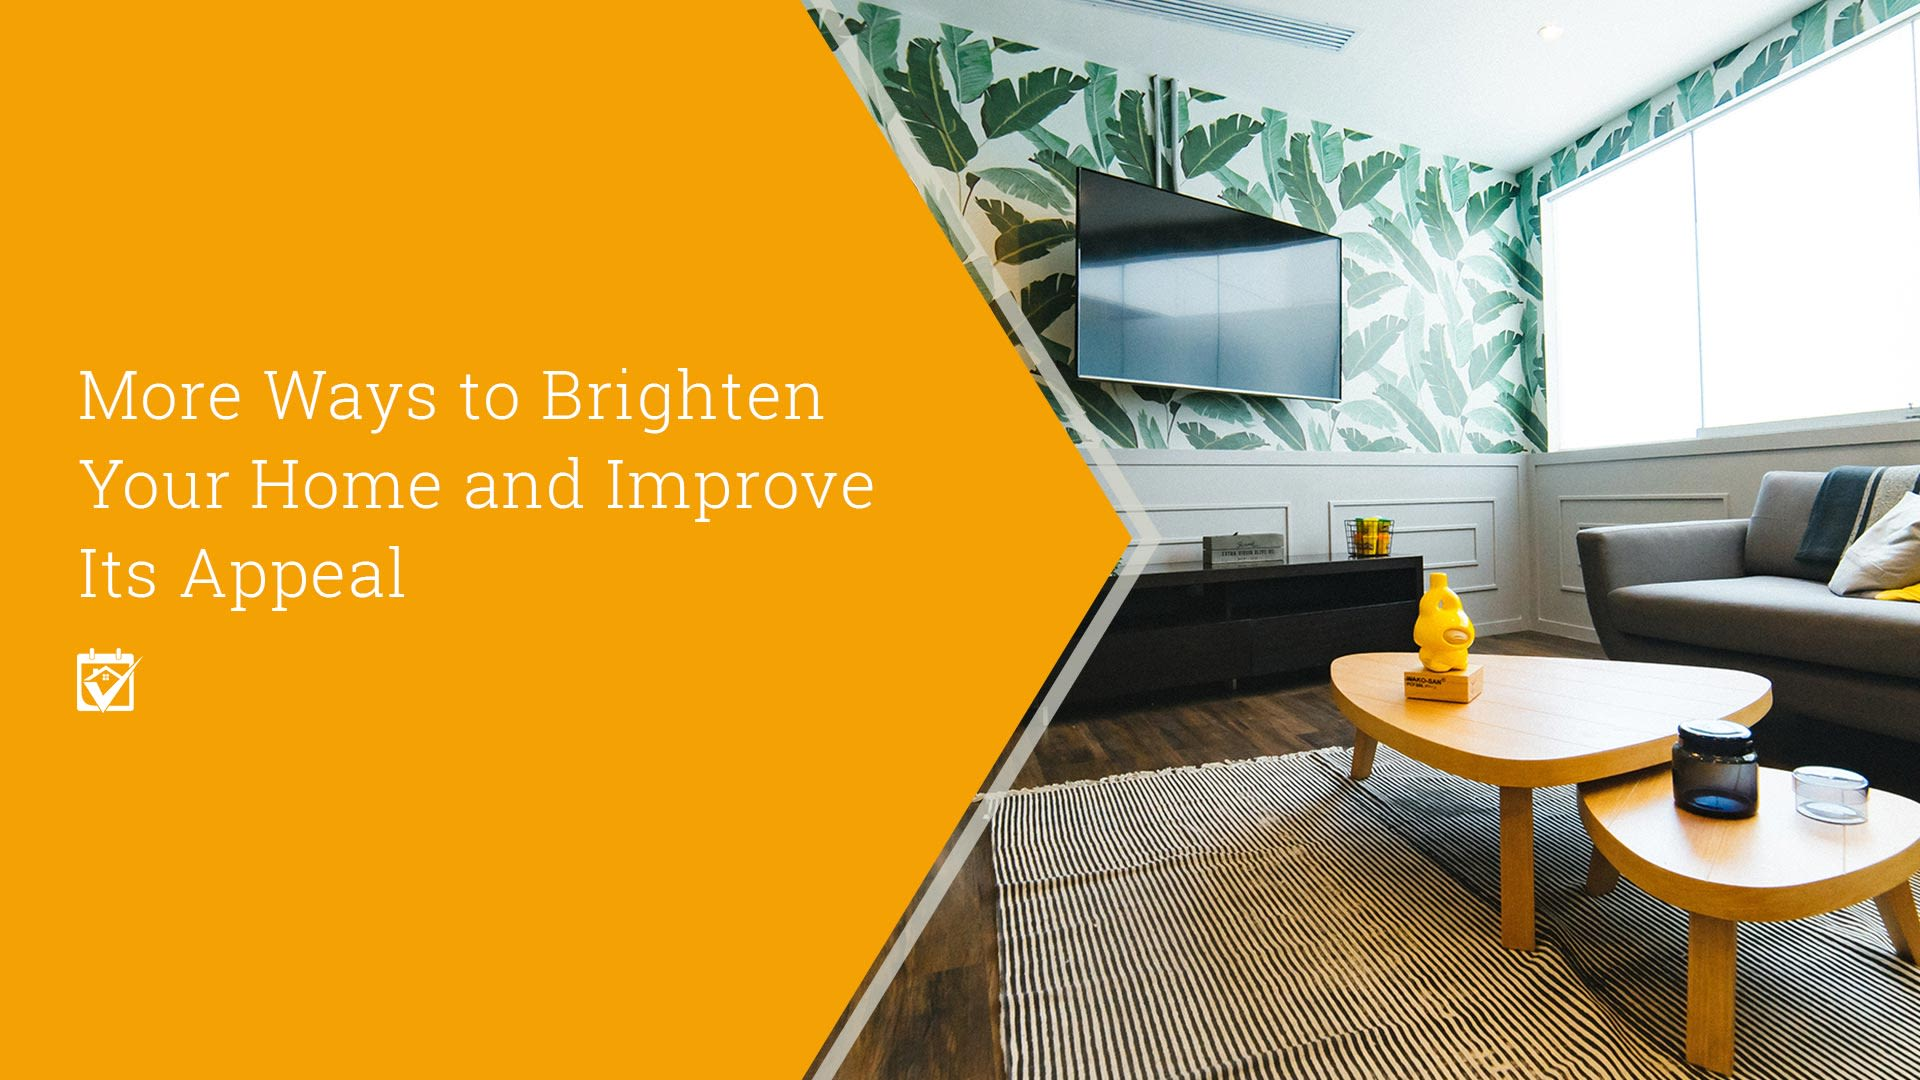 Let the Sun Shine In: More Ways to Brighten Your Home and Improve Its Appeal